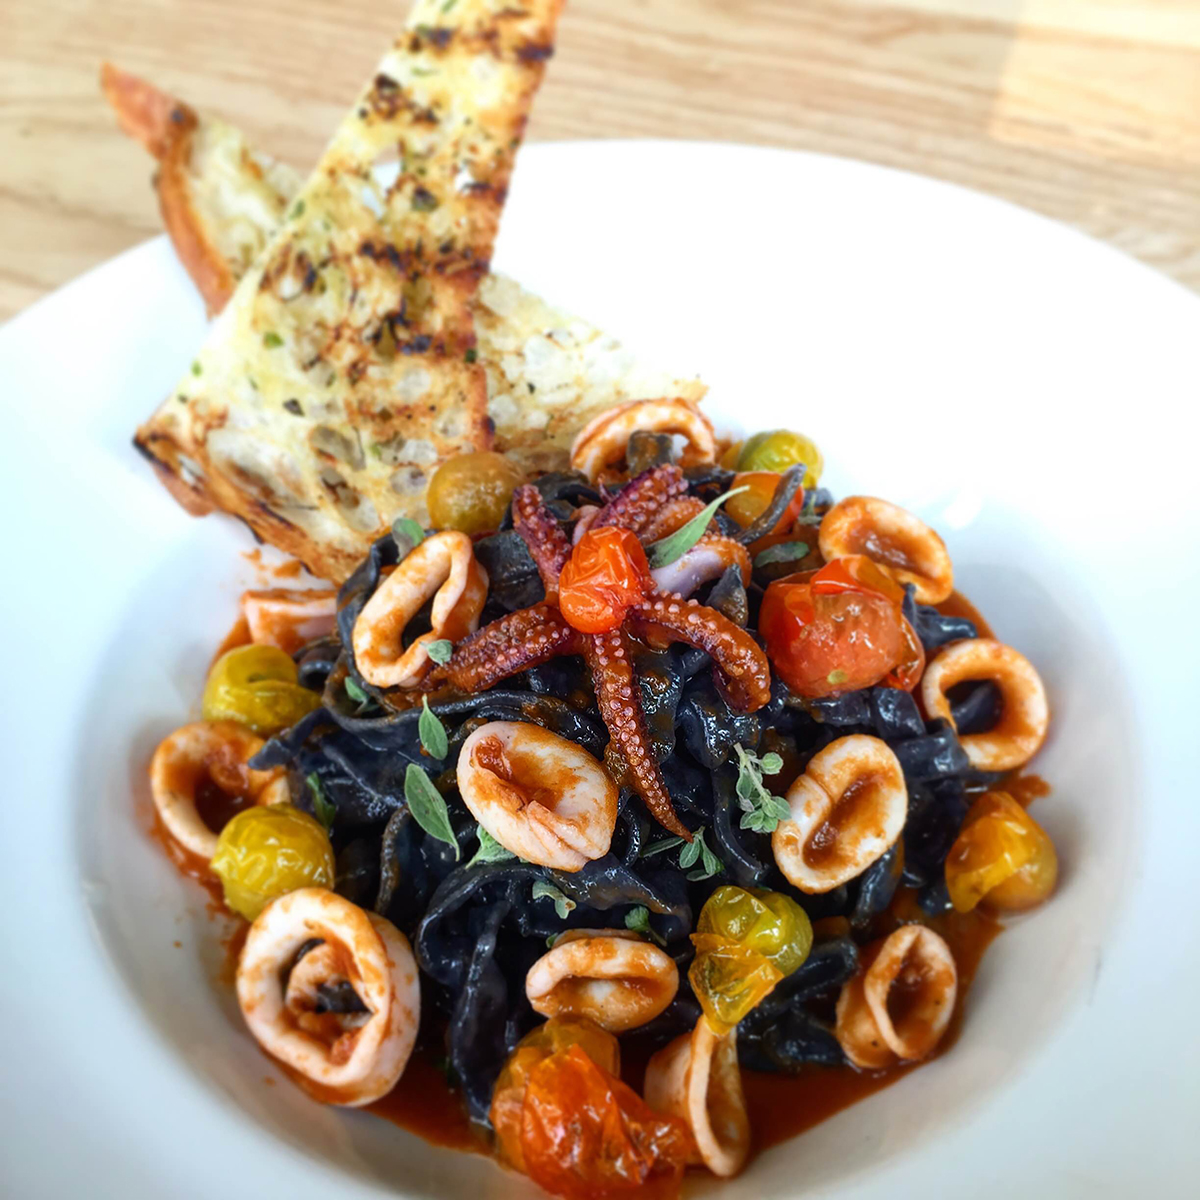 Squid Ink and Calamari pasta at Tender Greens